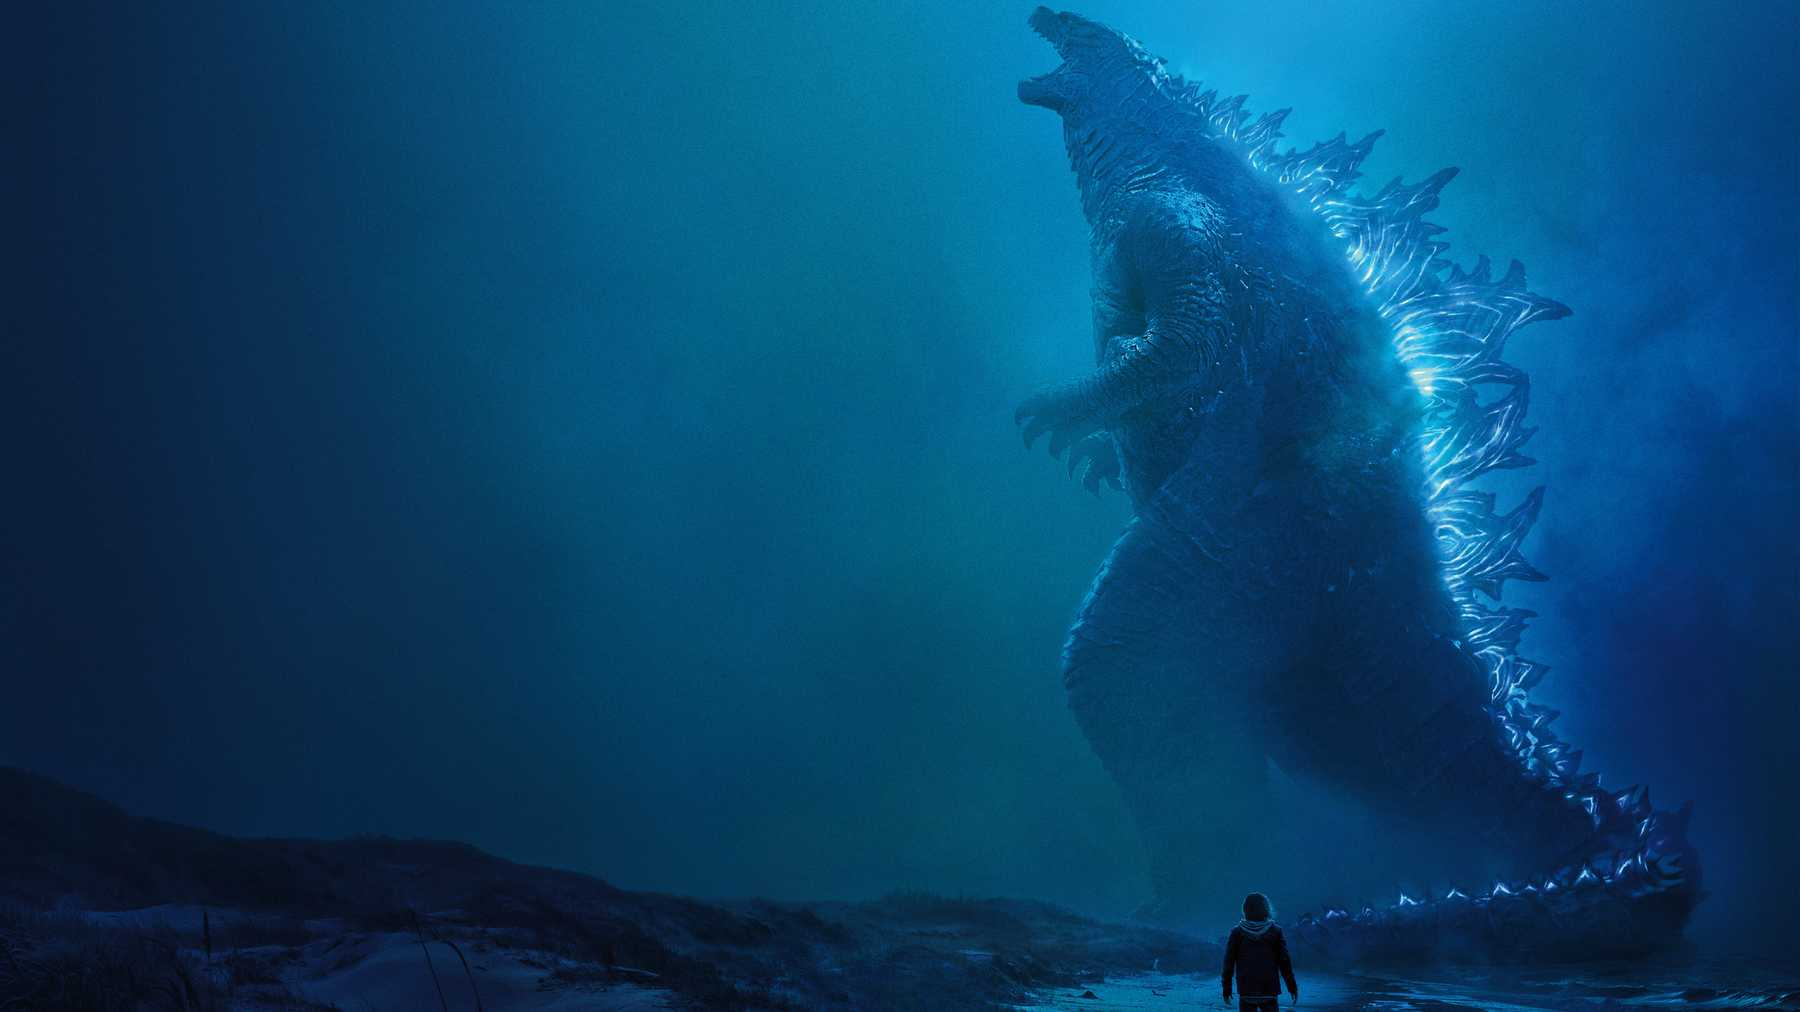 Image Credit: Warner Bros. Pictures/Godzilla: King Of The Monsters/For illustrative purposes